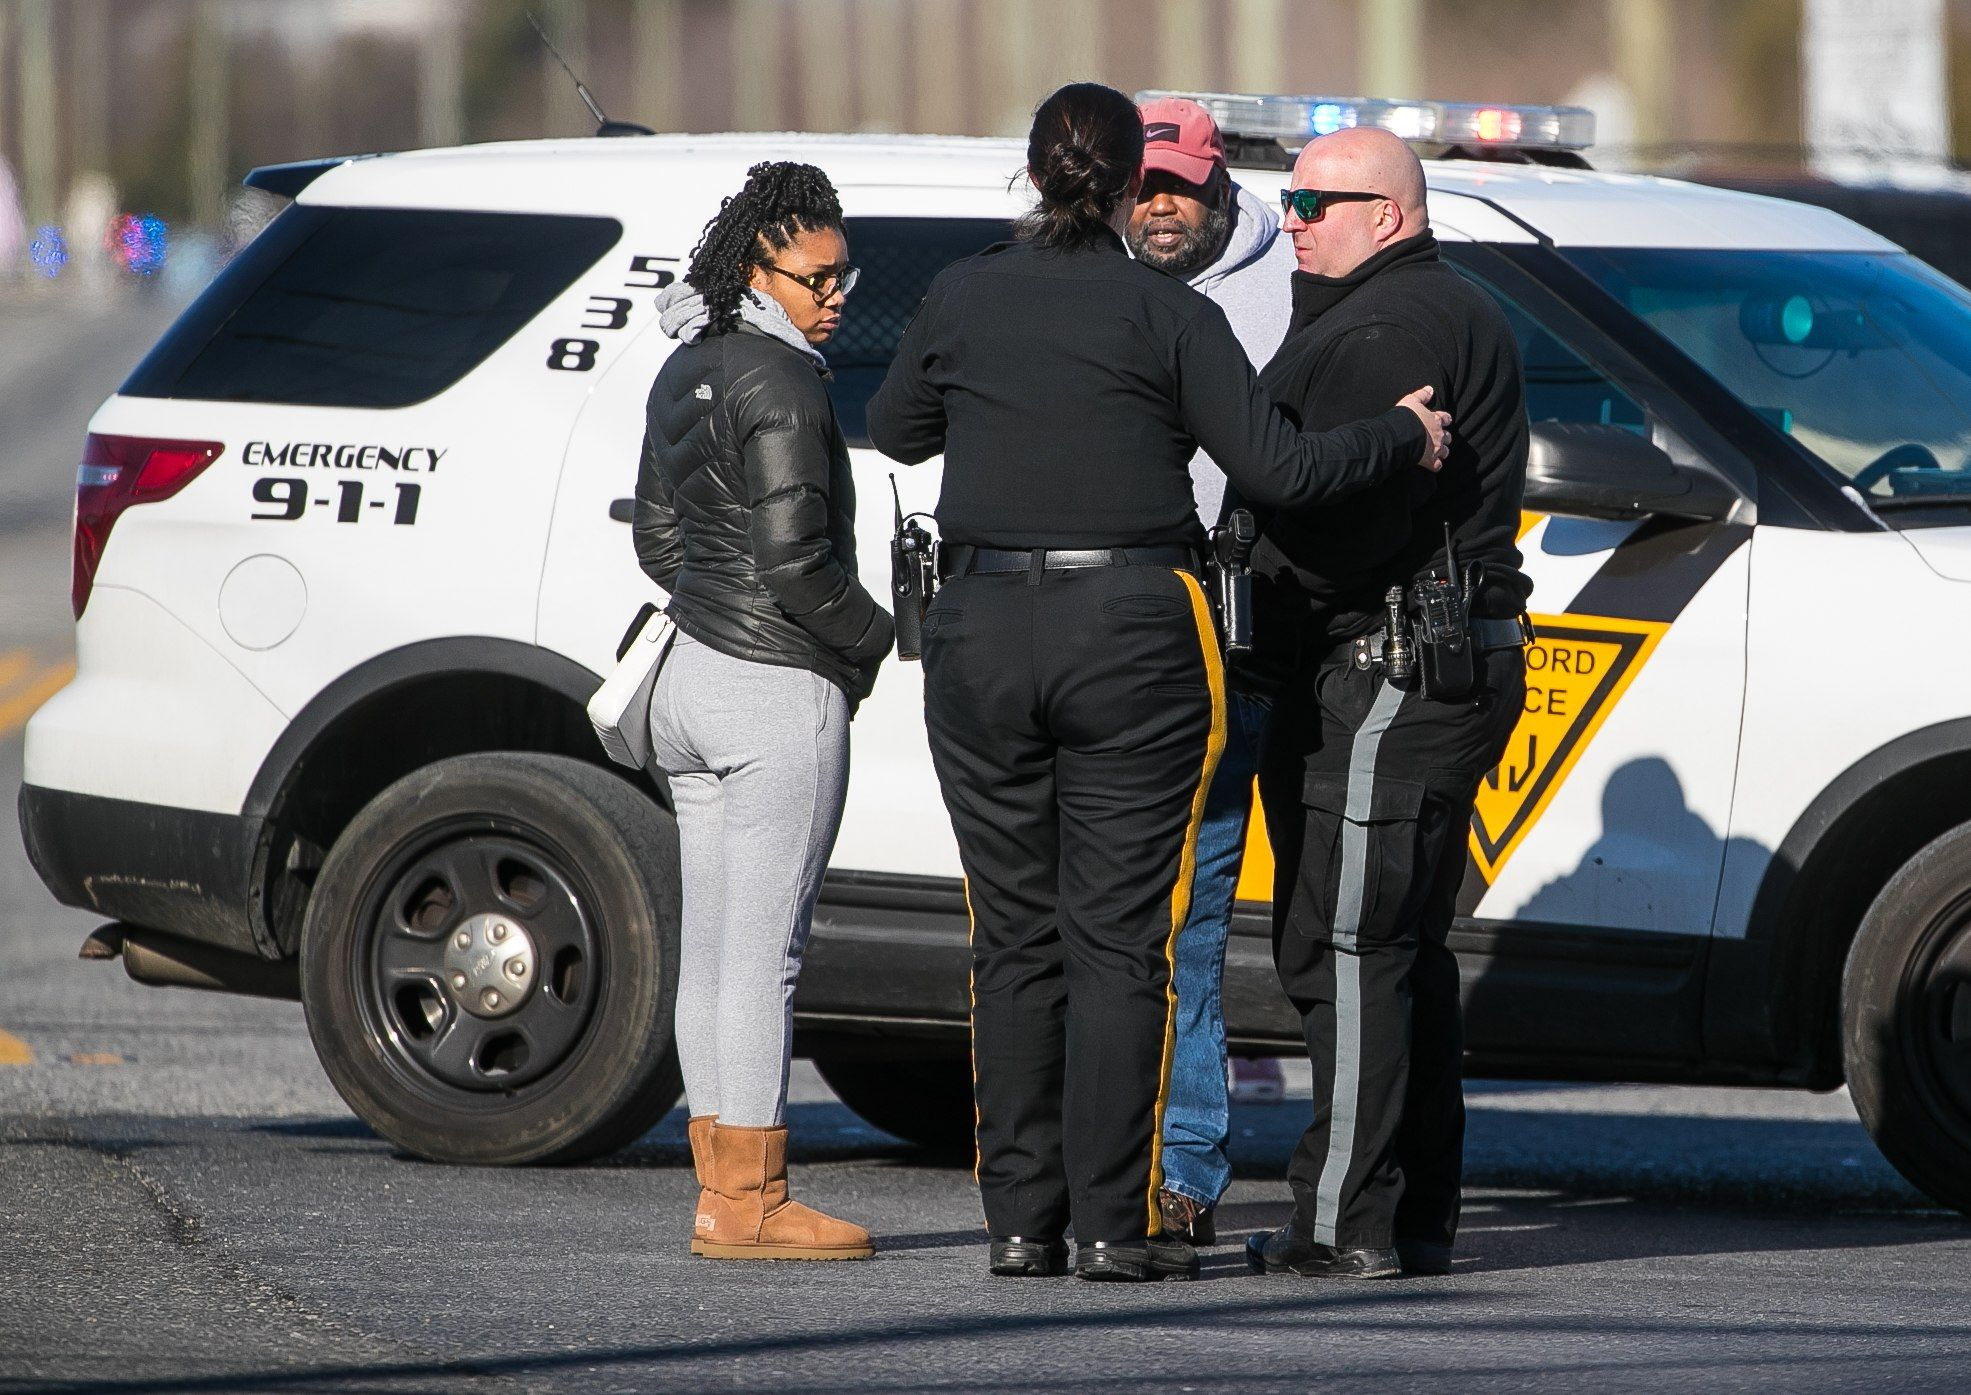 Suspect shot, hostages safe at UPS facility in New Jersey